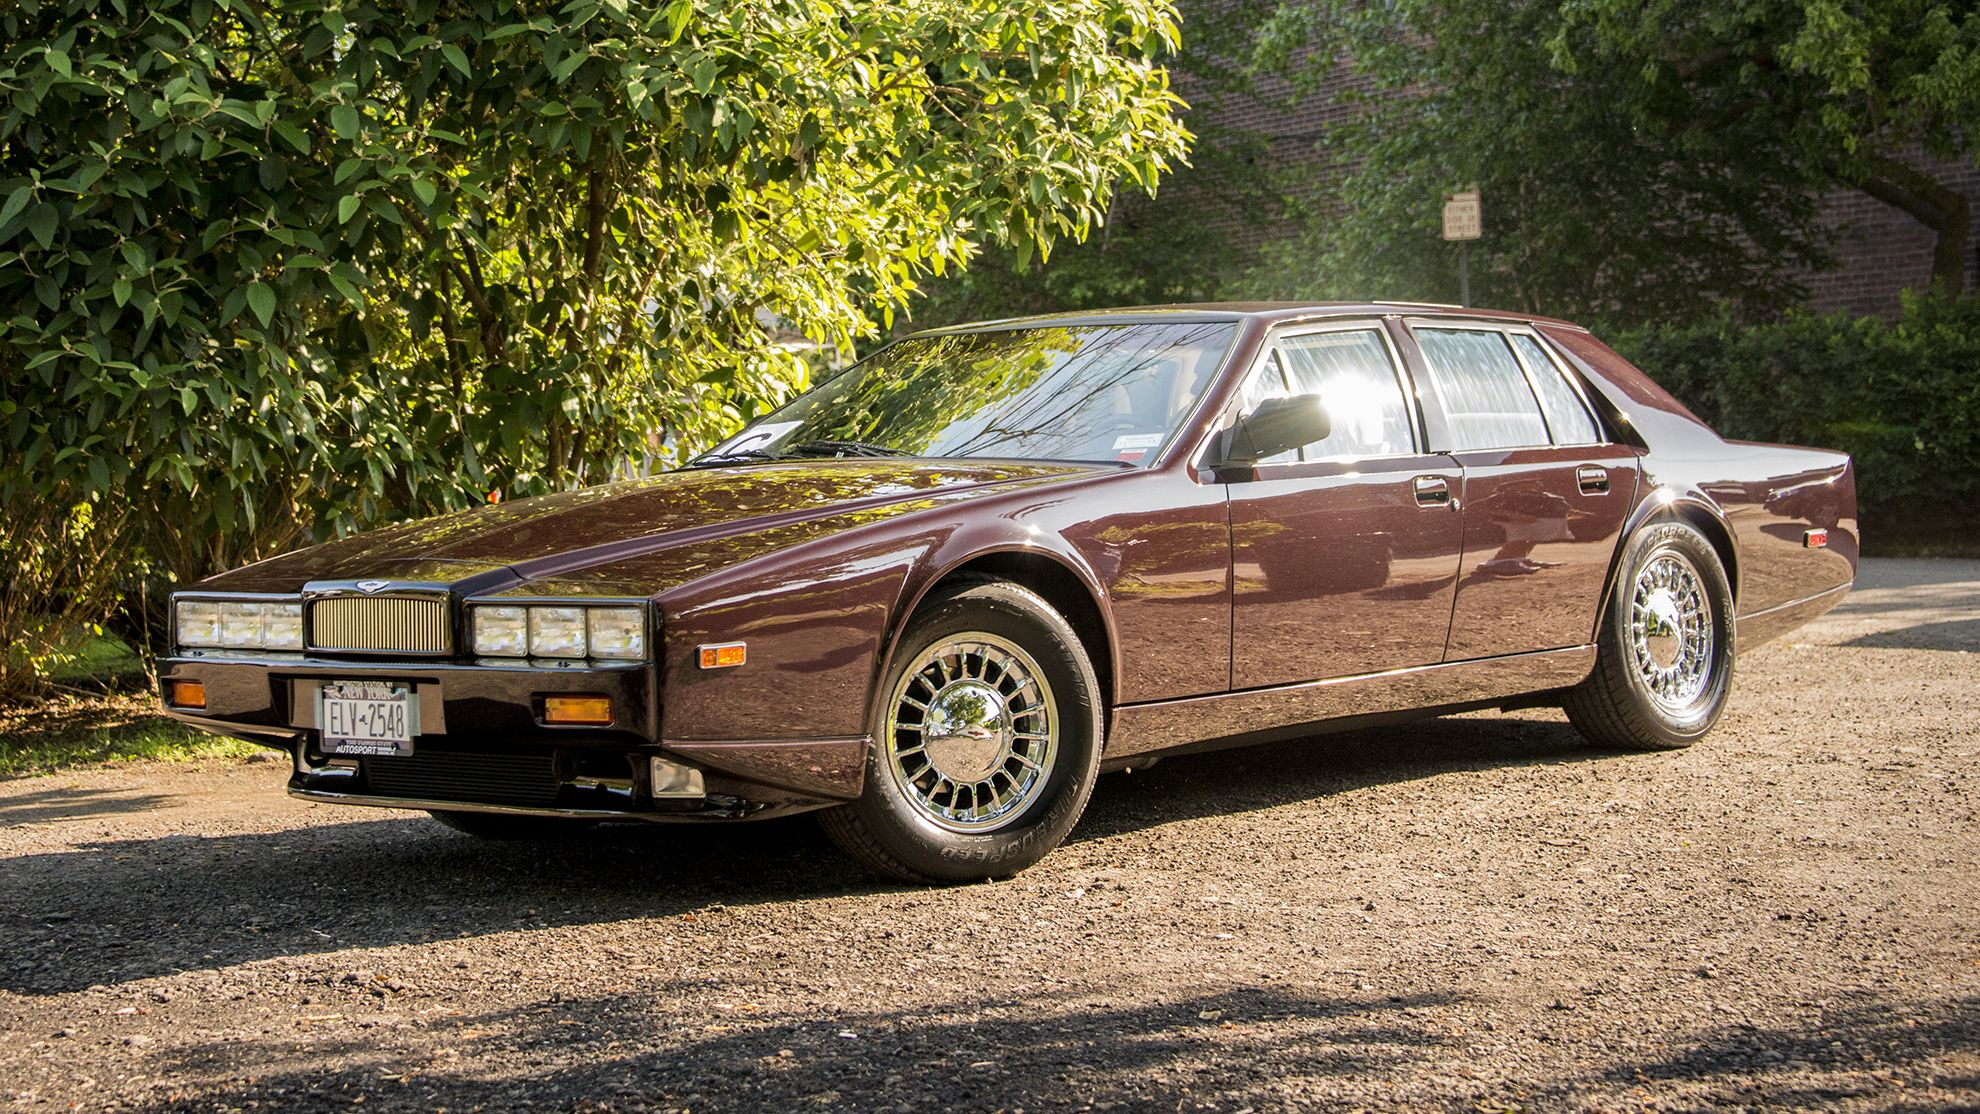 Was The Lagonda Ahead Of Its Time Or Did Its Time Never Come